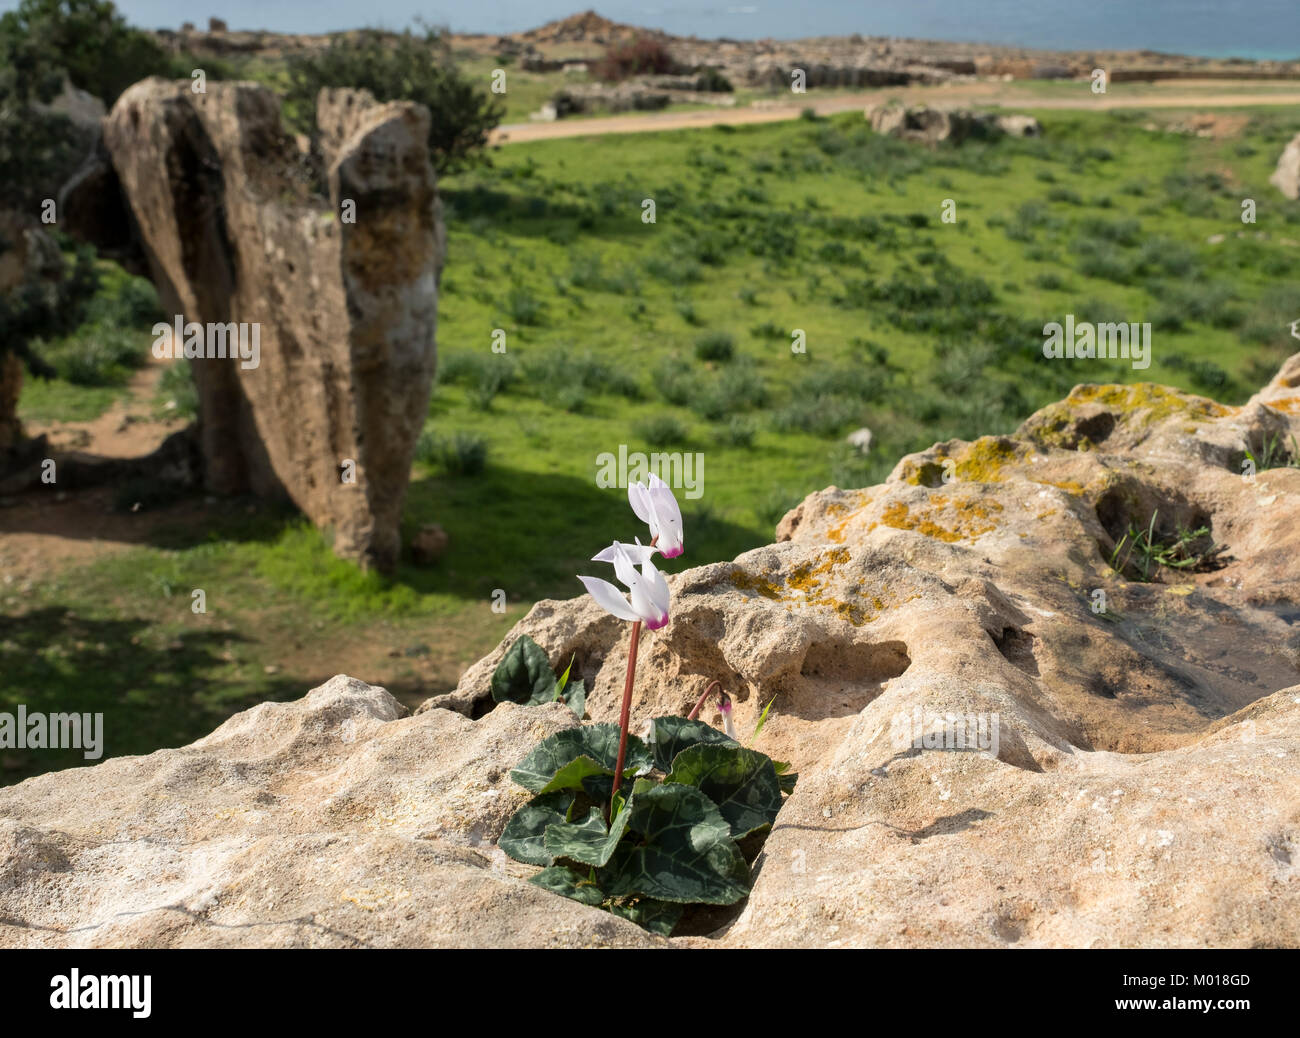 Cyclamen persicum Persian cyclamen flowers growing in the Tomb of the Kings archaeological site, Kato Paphos, Paphos, - Stock Image